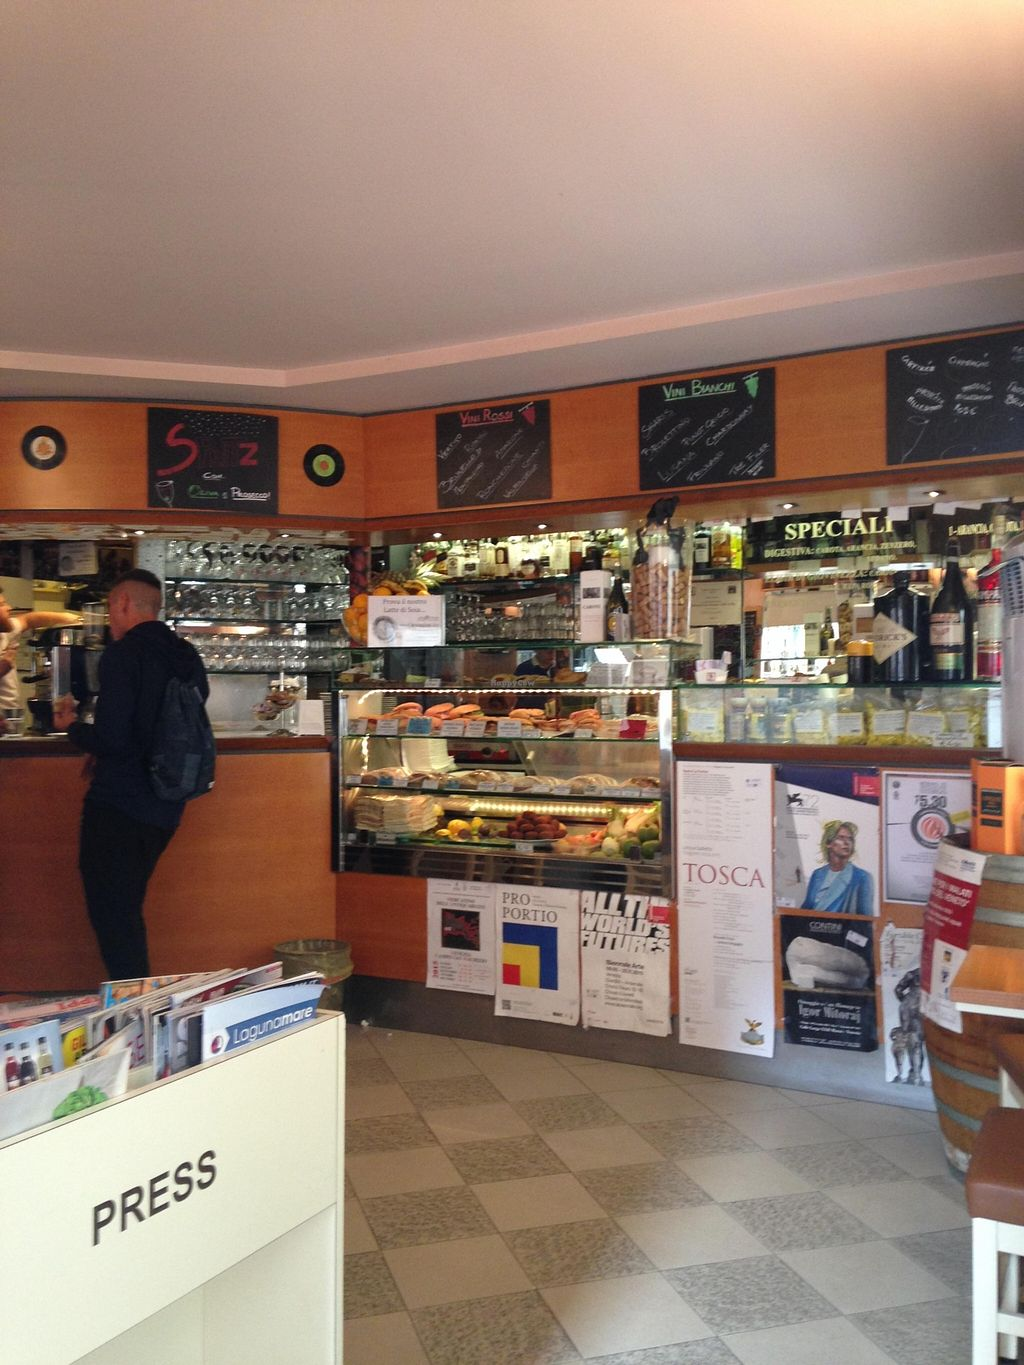 """Photo of Brasilia Wine Caffe  by <a href=""""/members/profile/Ffion89"""">Ffion89</a> <br/>Inside of Brasilia Wine Caffe - traditional Italian café <br/> October 27, 2015  - <a href='/contact/abuse/image/63338/122897'>Report</a>"""